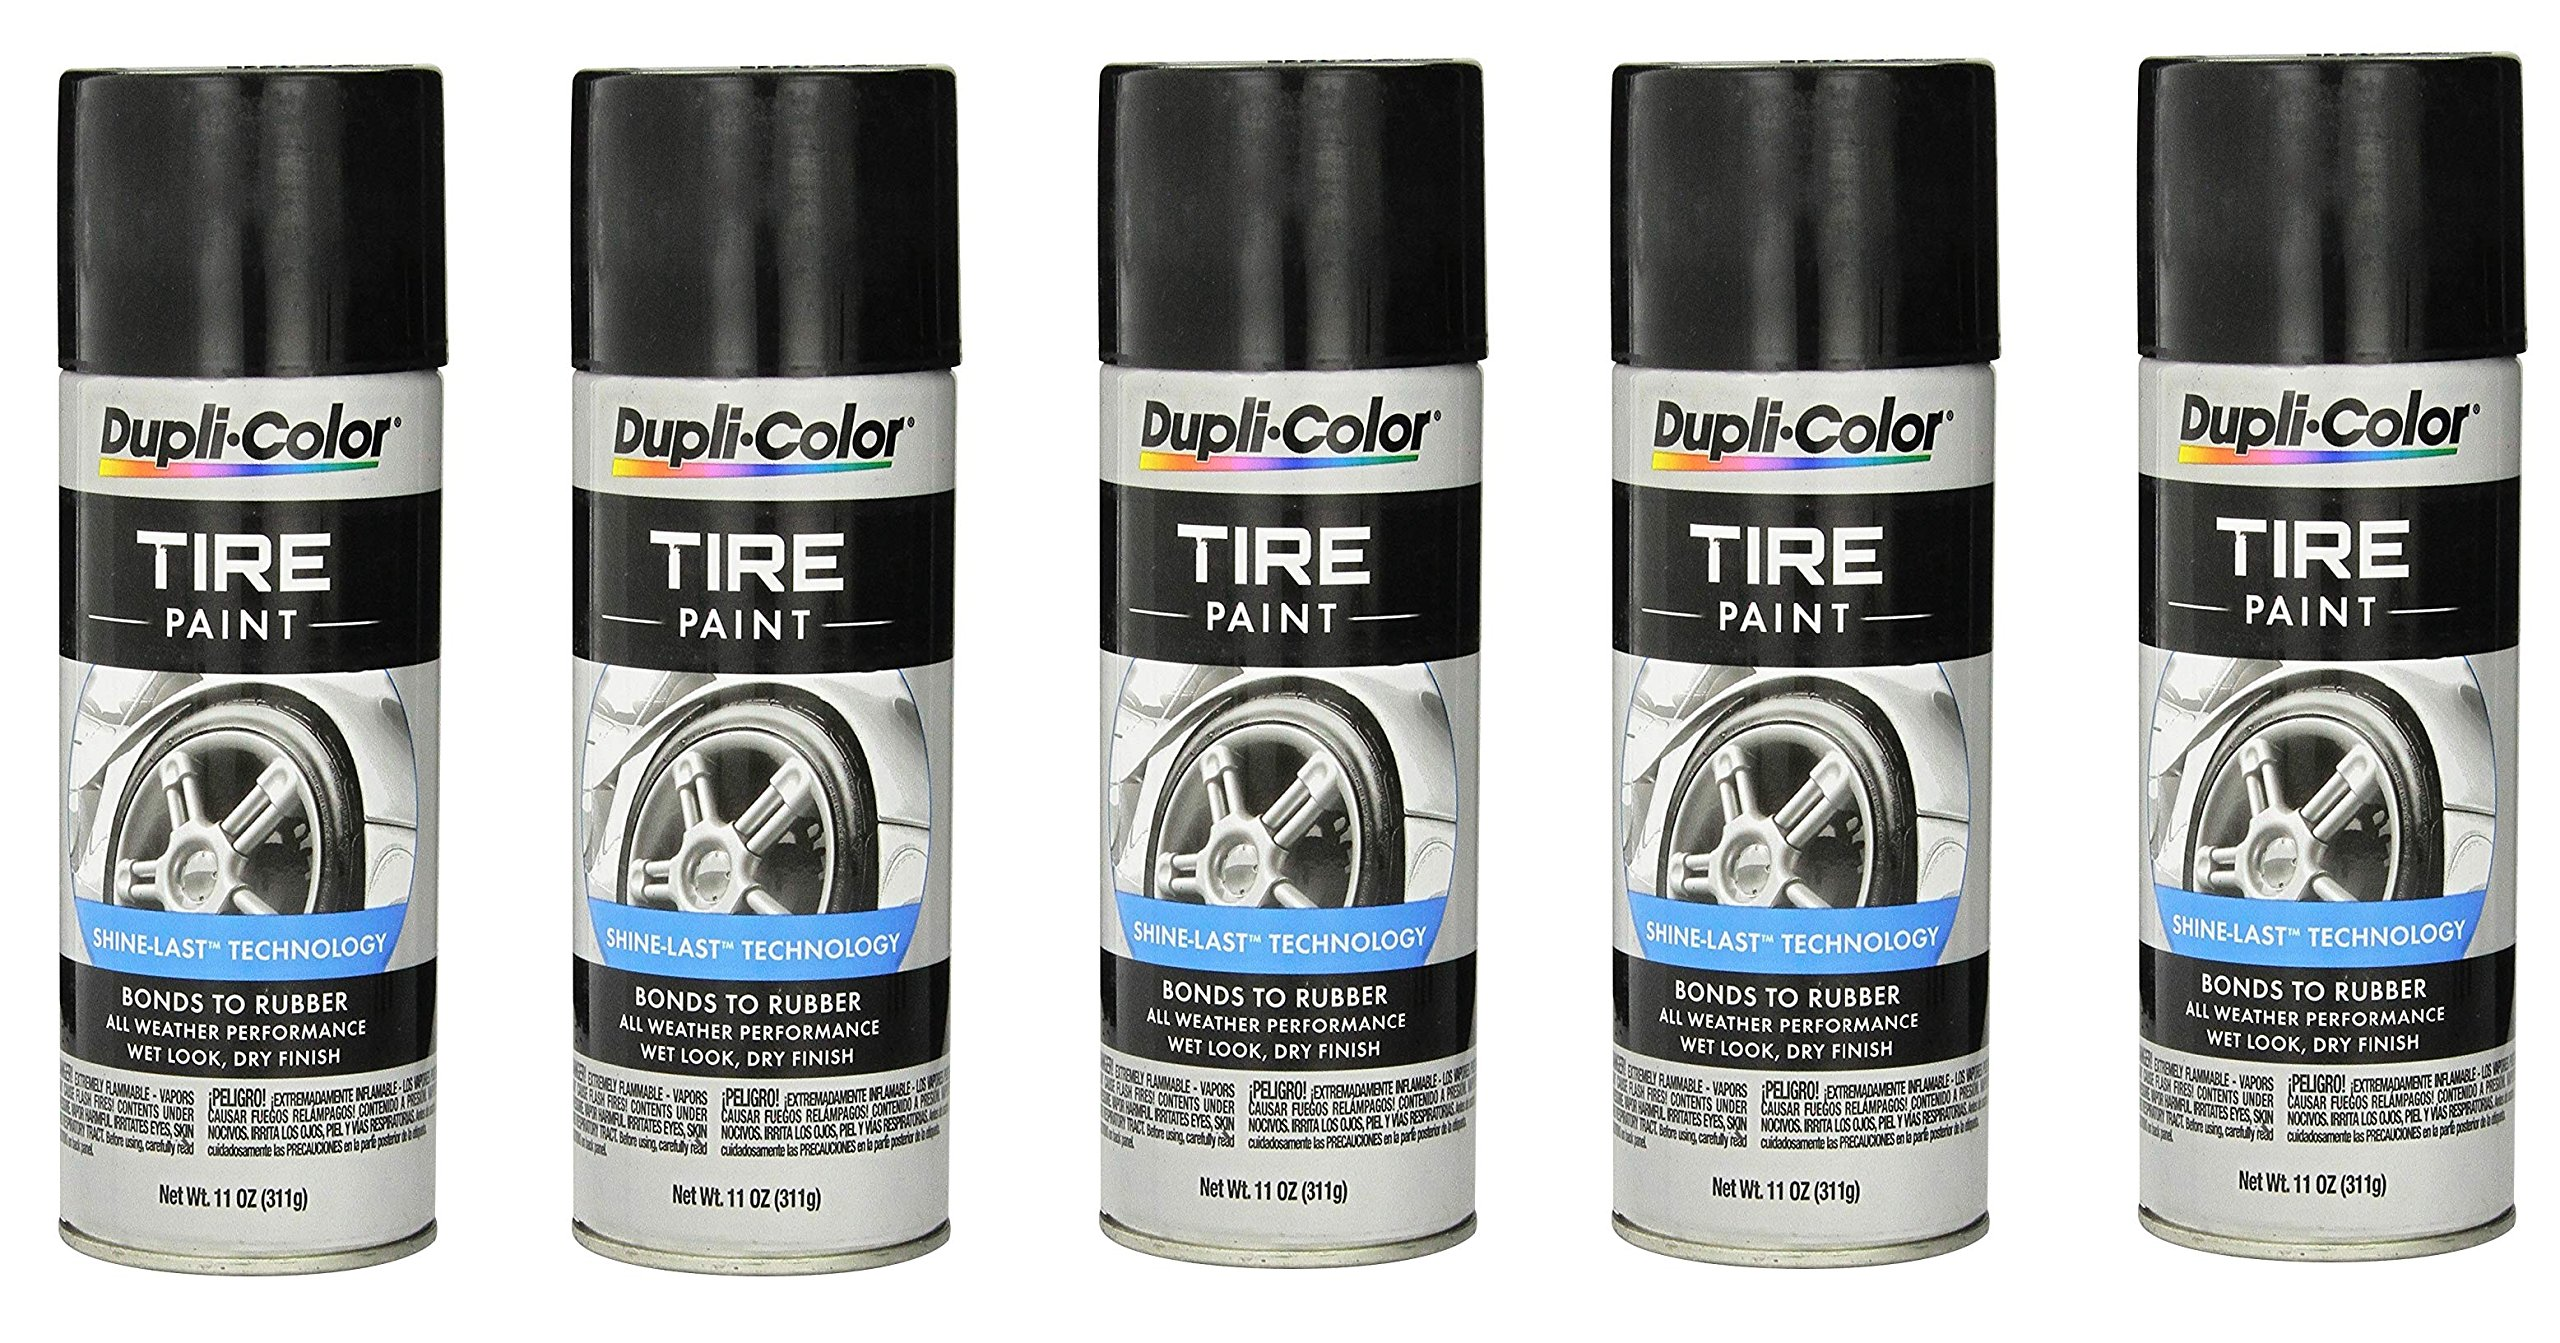 Dupli-Color ® TP101 Tire Paint - 11 fl. oz. (5) by Dupli-Color ®